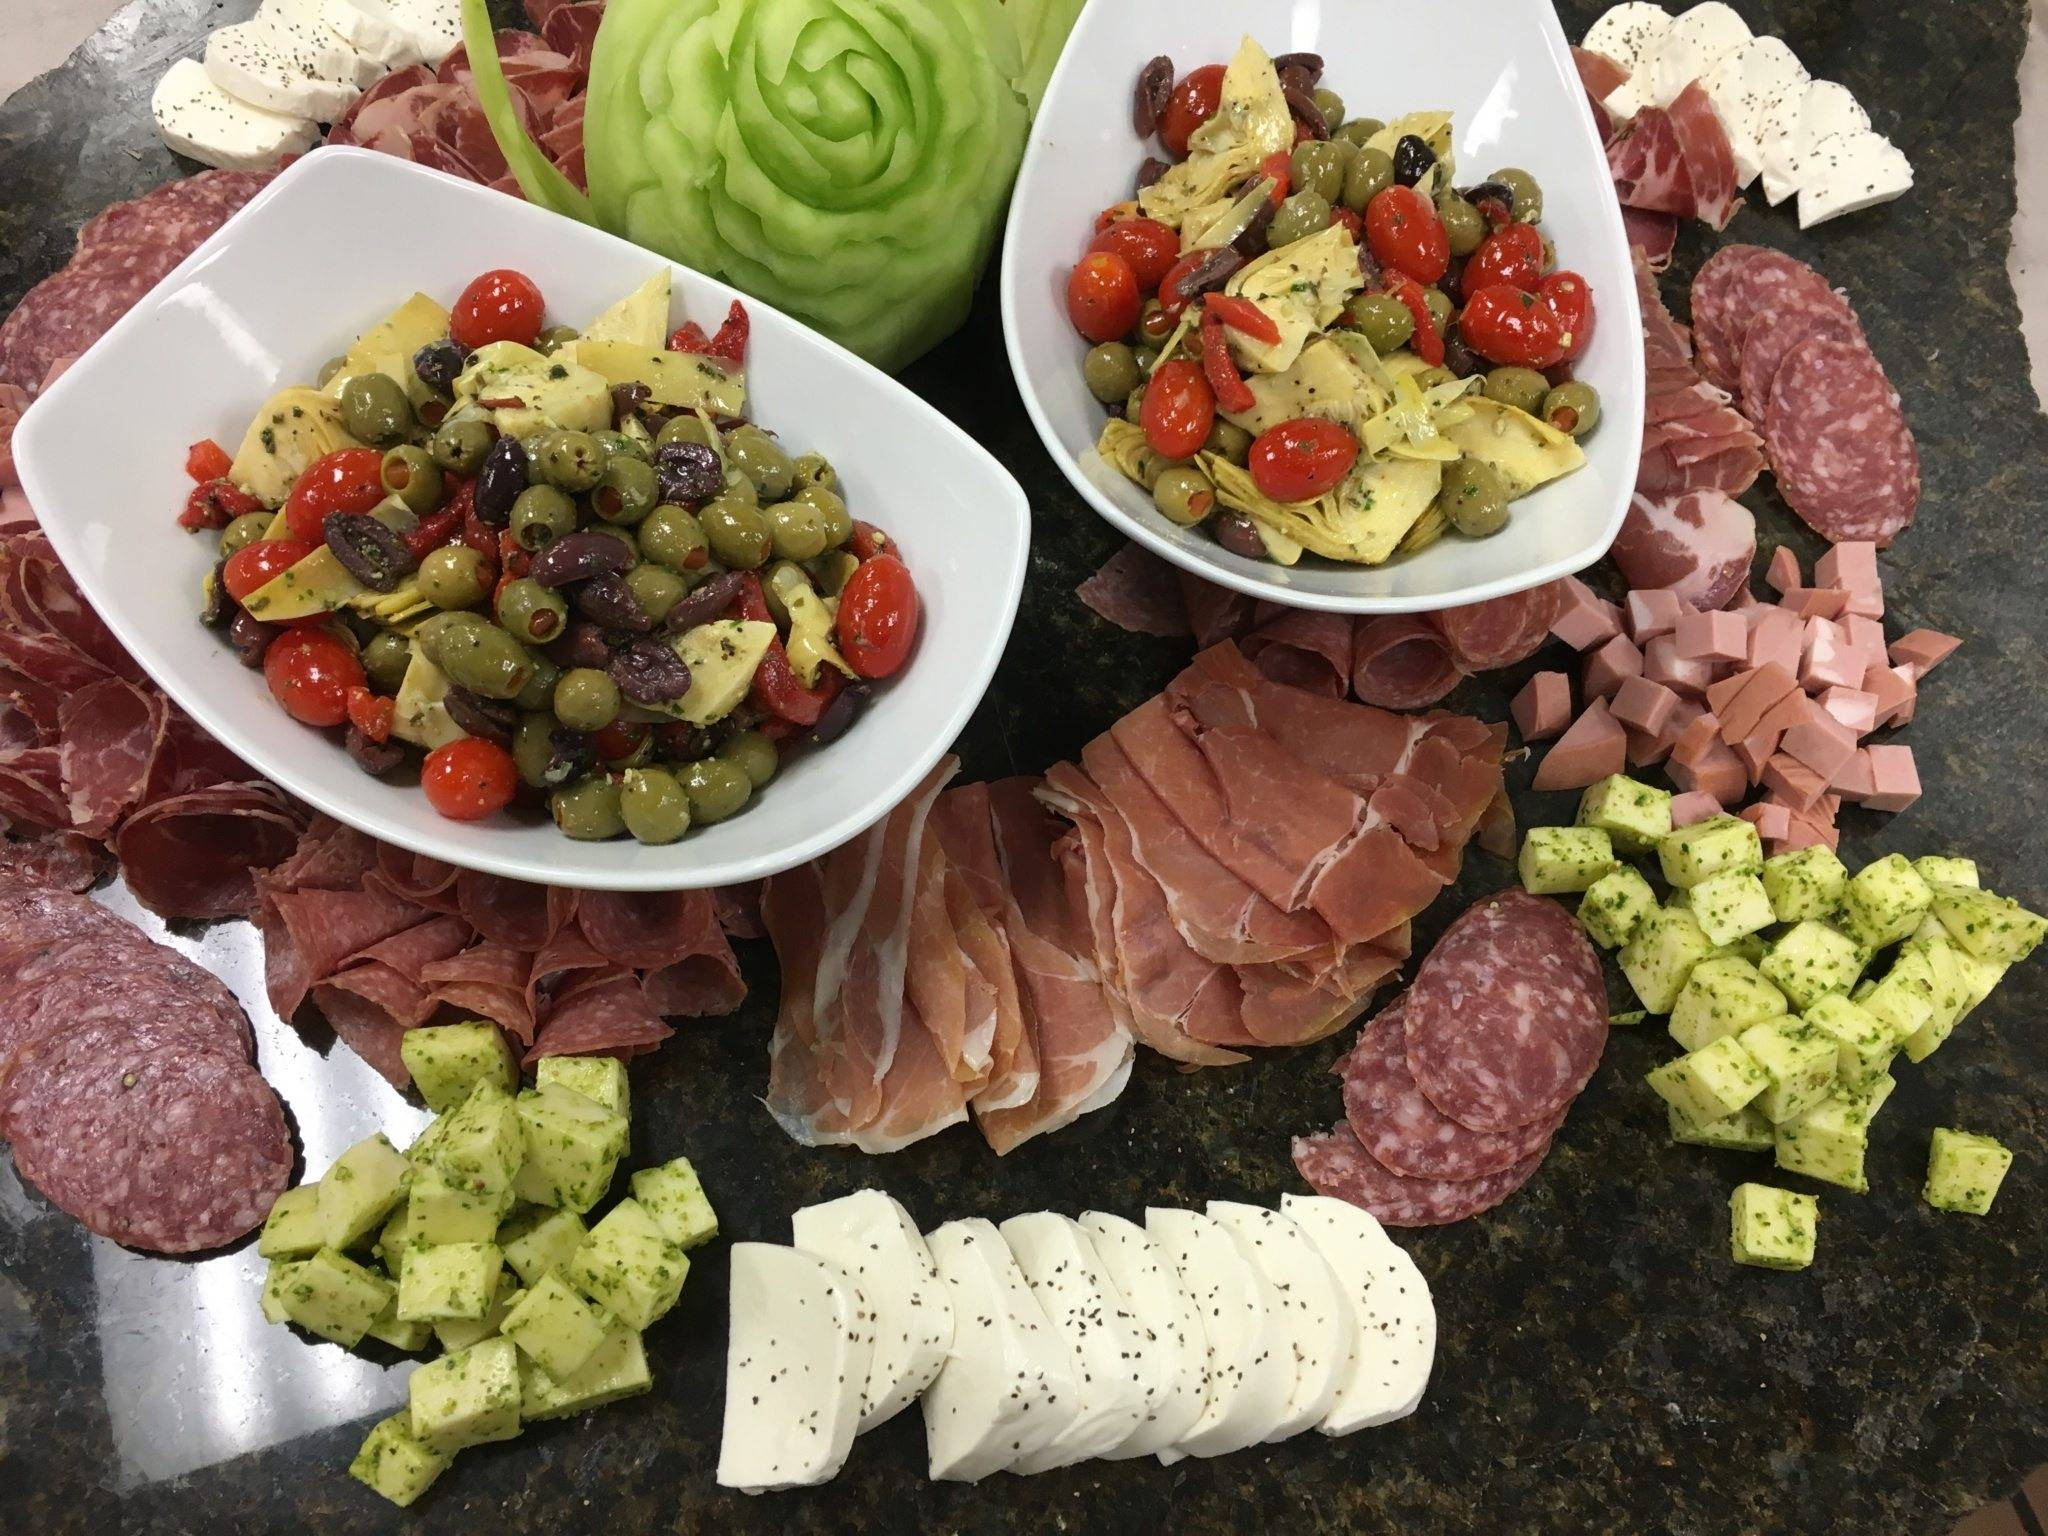 Antipasto tray with variety of meats and cheeses